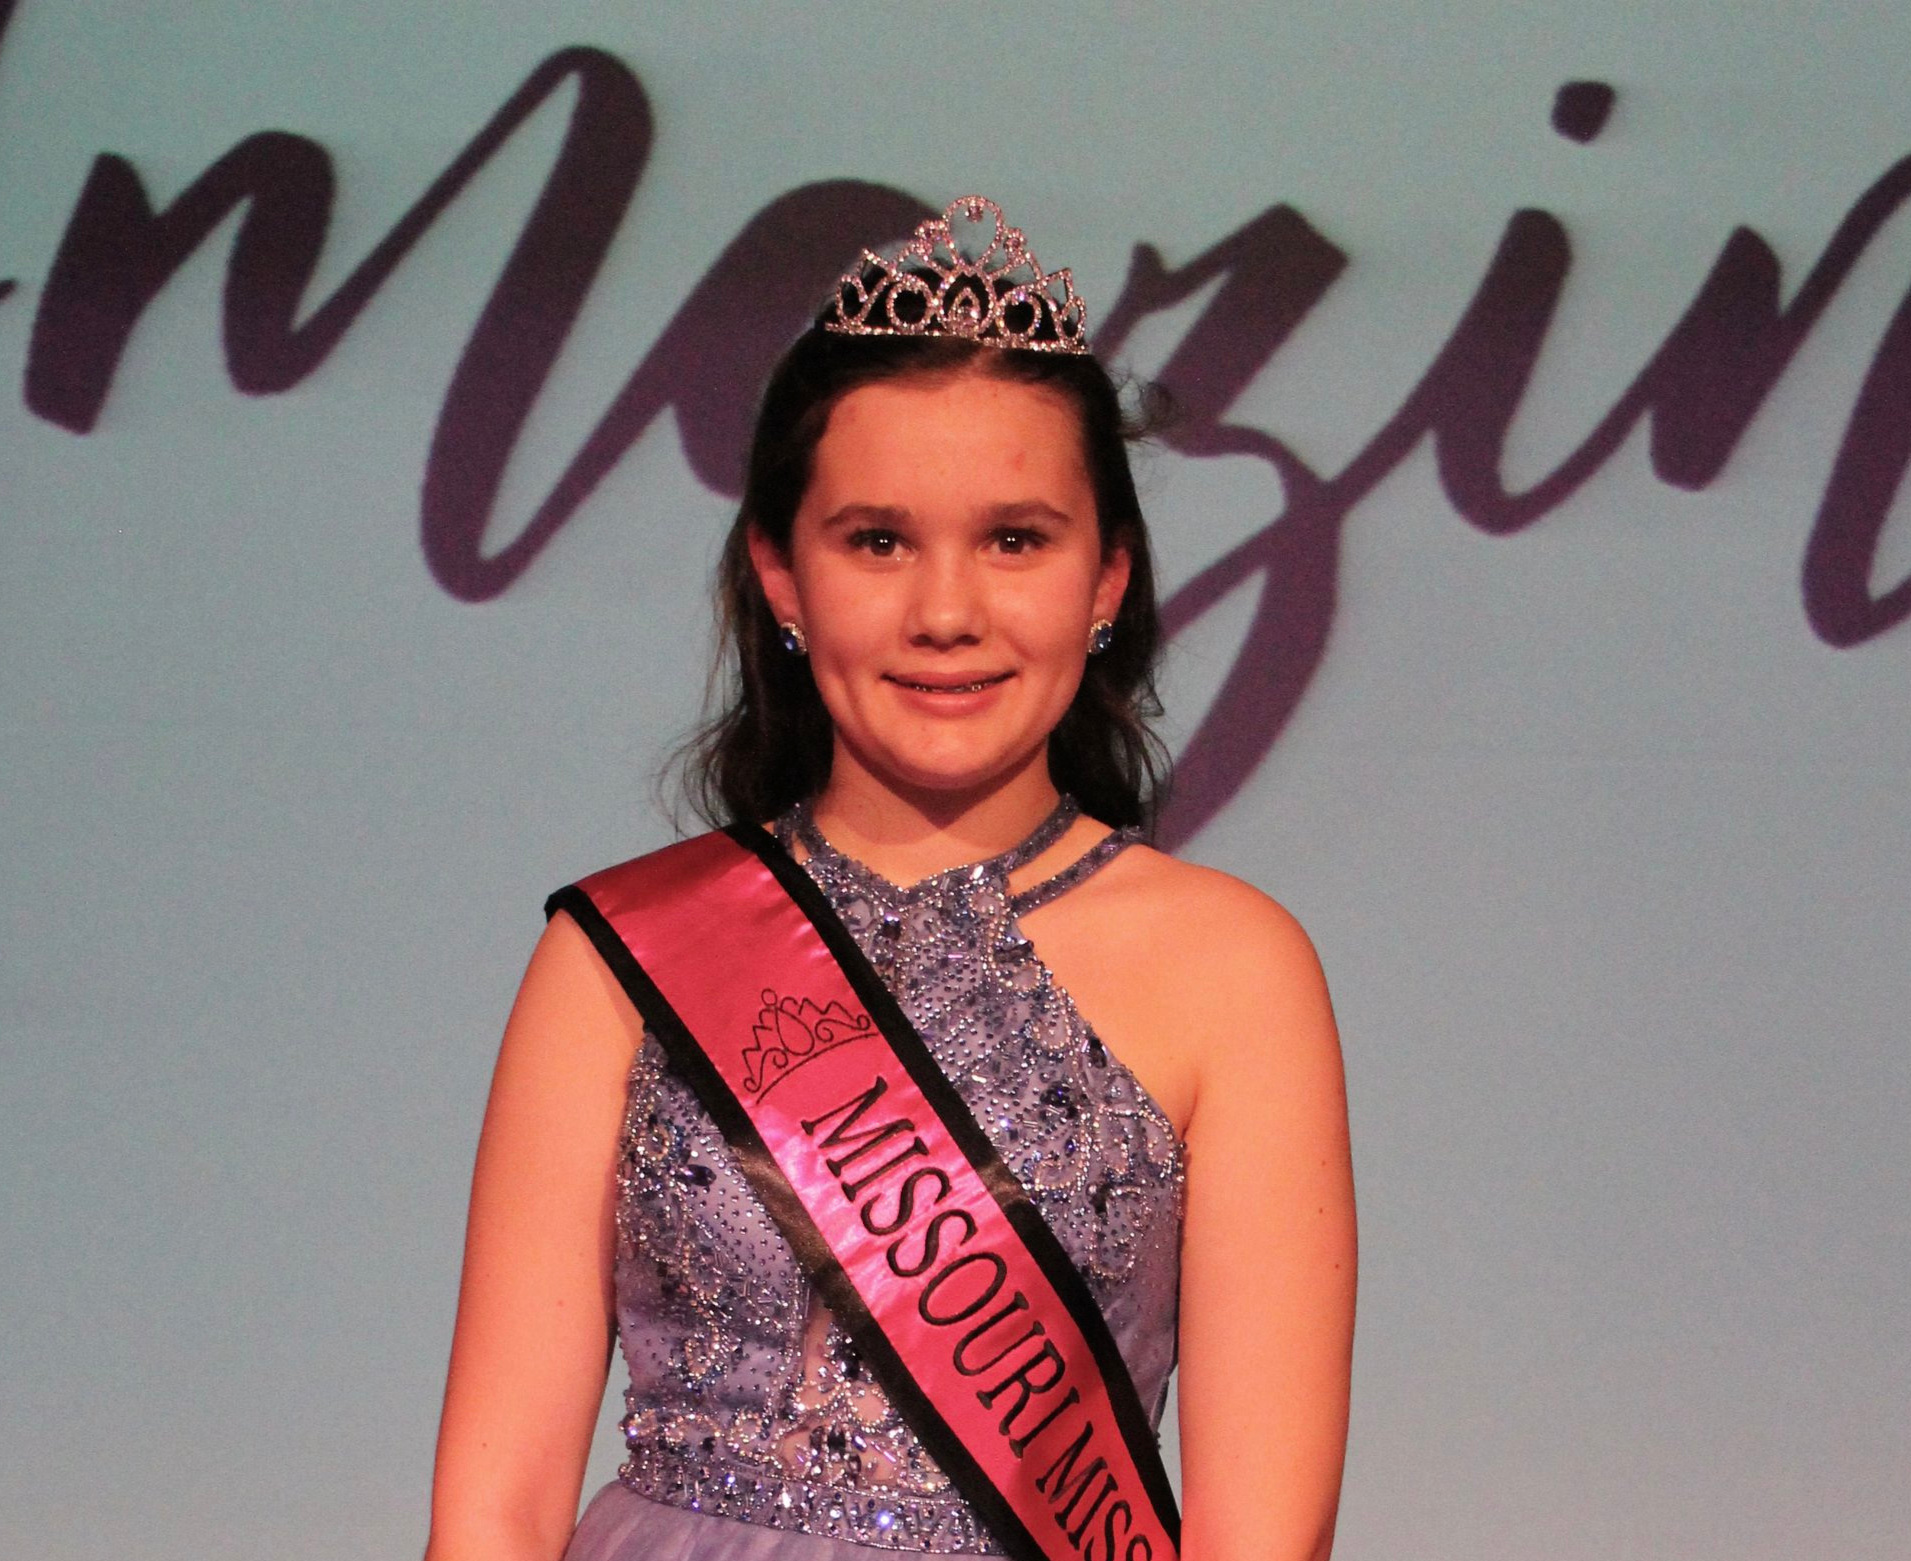 Missouri Miss Amazing Preteen  |  Anna Roeslein   Click to read more about Anna!